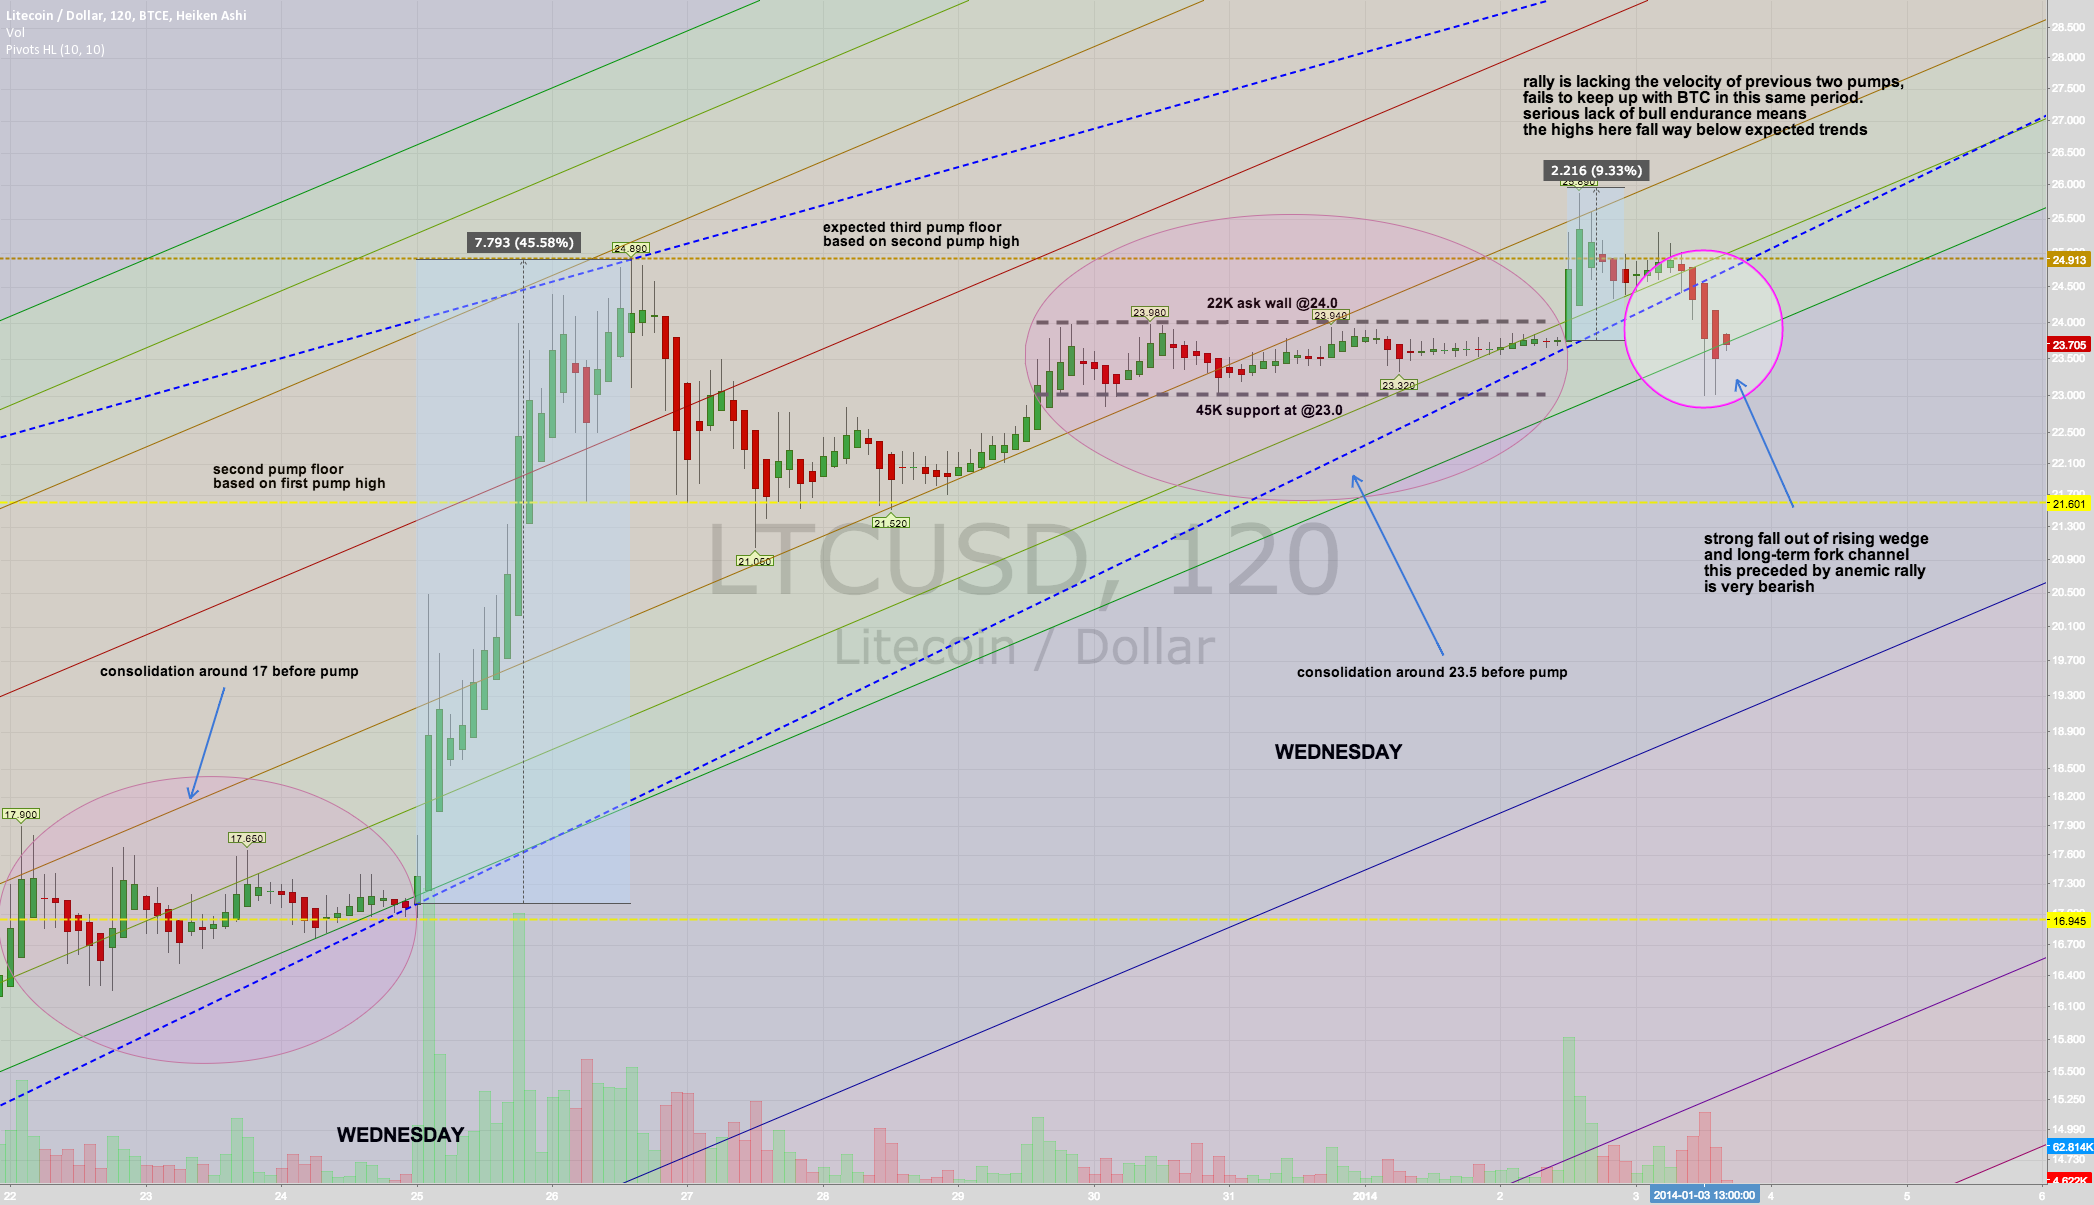 third pump period fails to take off, then drops through support